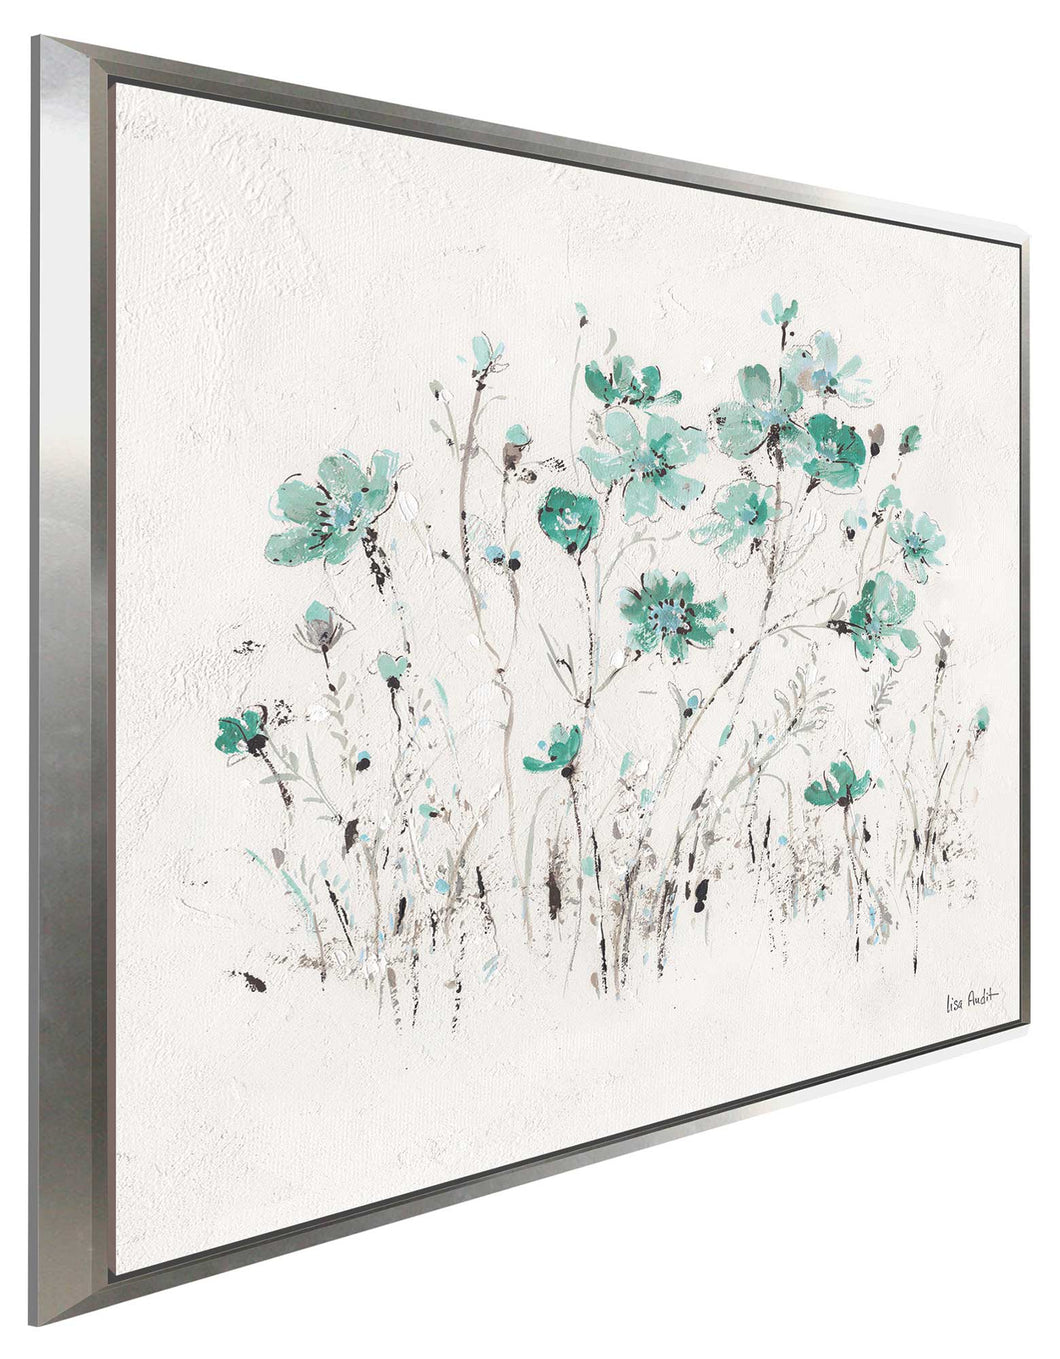 Wildflowers II Turquoise by Lisa Audit Print on Canvas in Floating Frame Floral,White art,Square Shape,All Floating Canvas,Lisa Audit